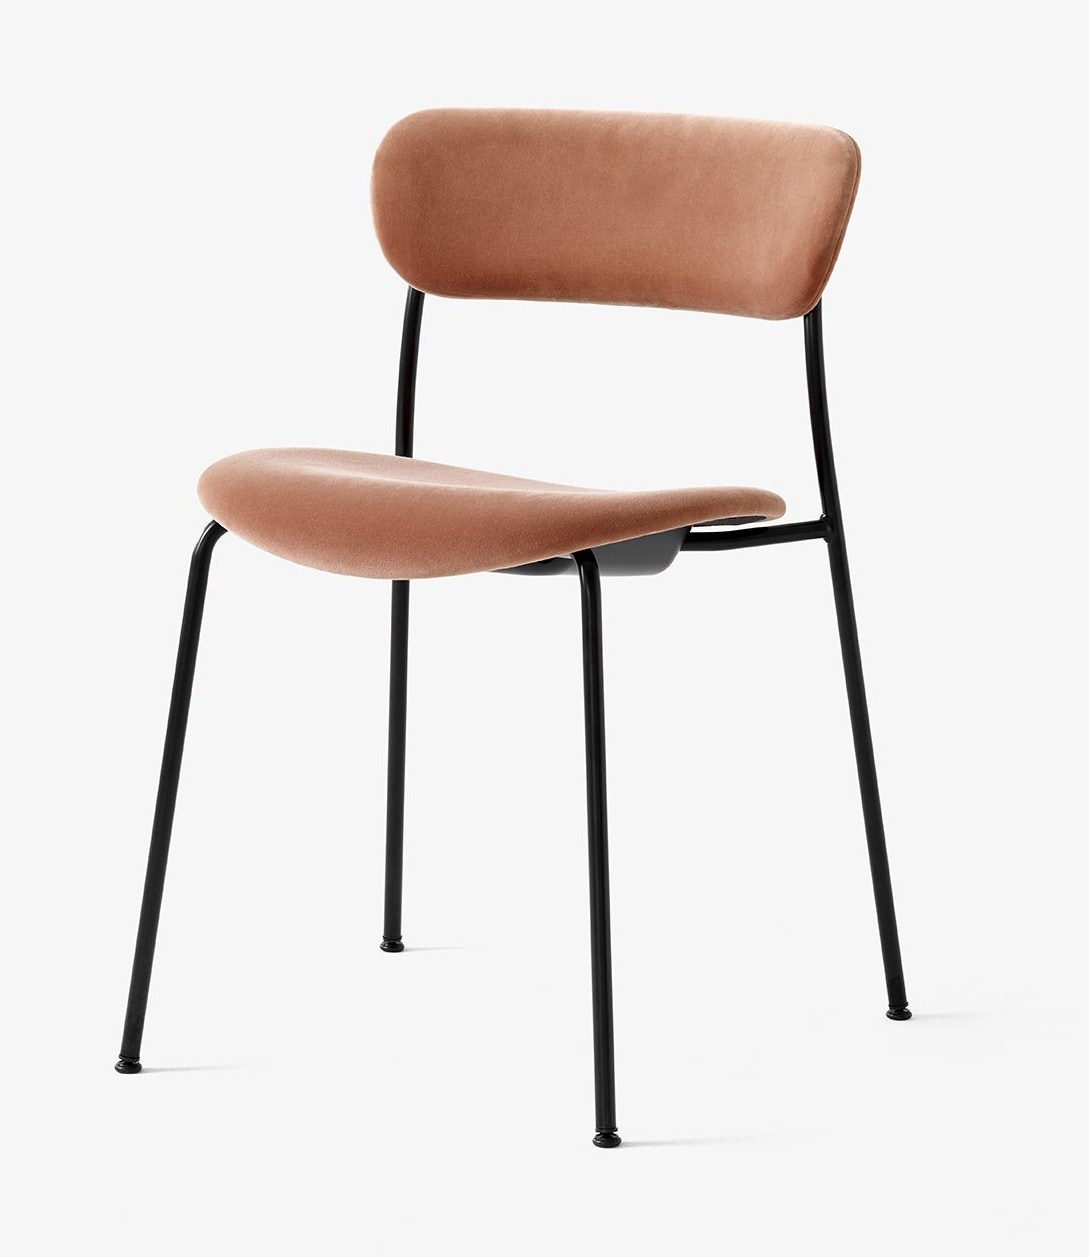 &tradition Pavilion AV12 Chair